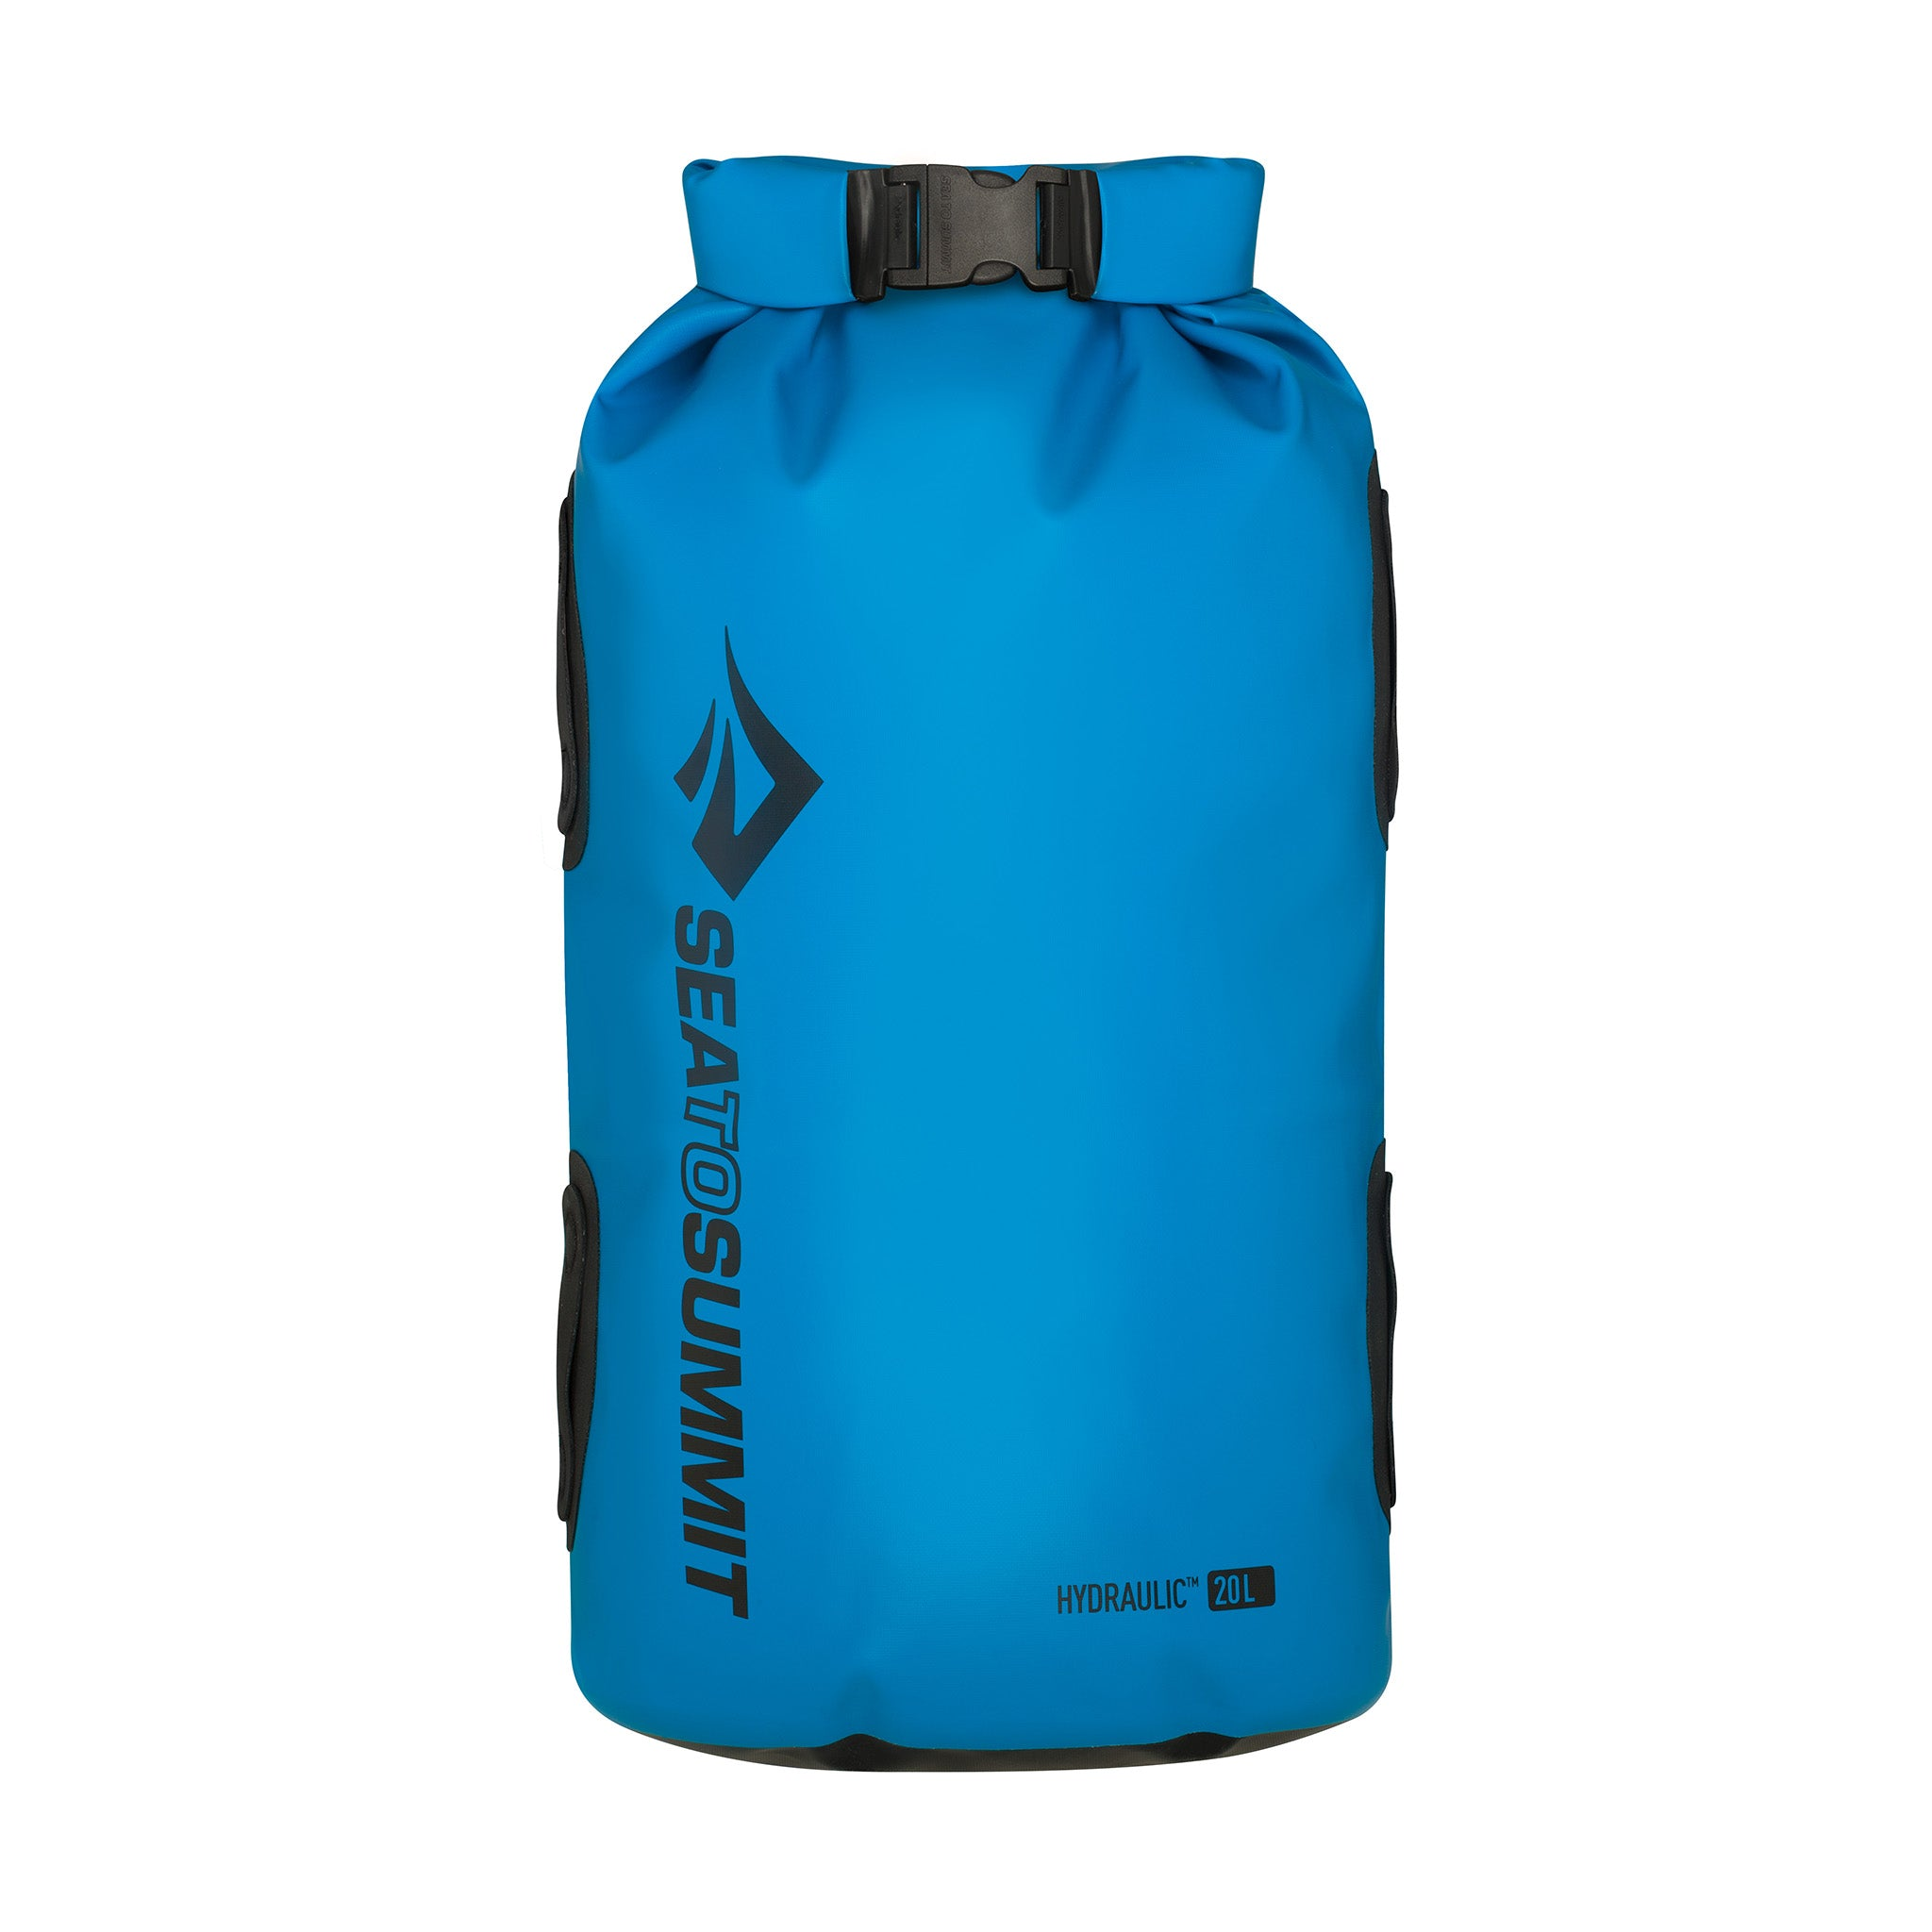 Hydraulic_Dry_Bag___20_Liter___Blue